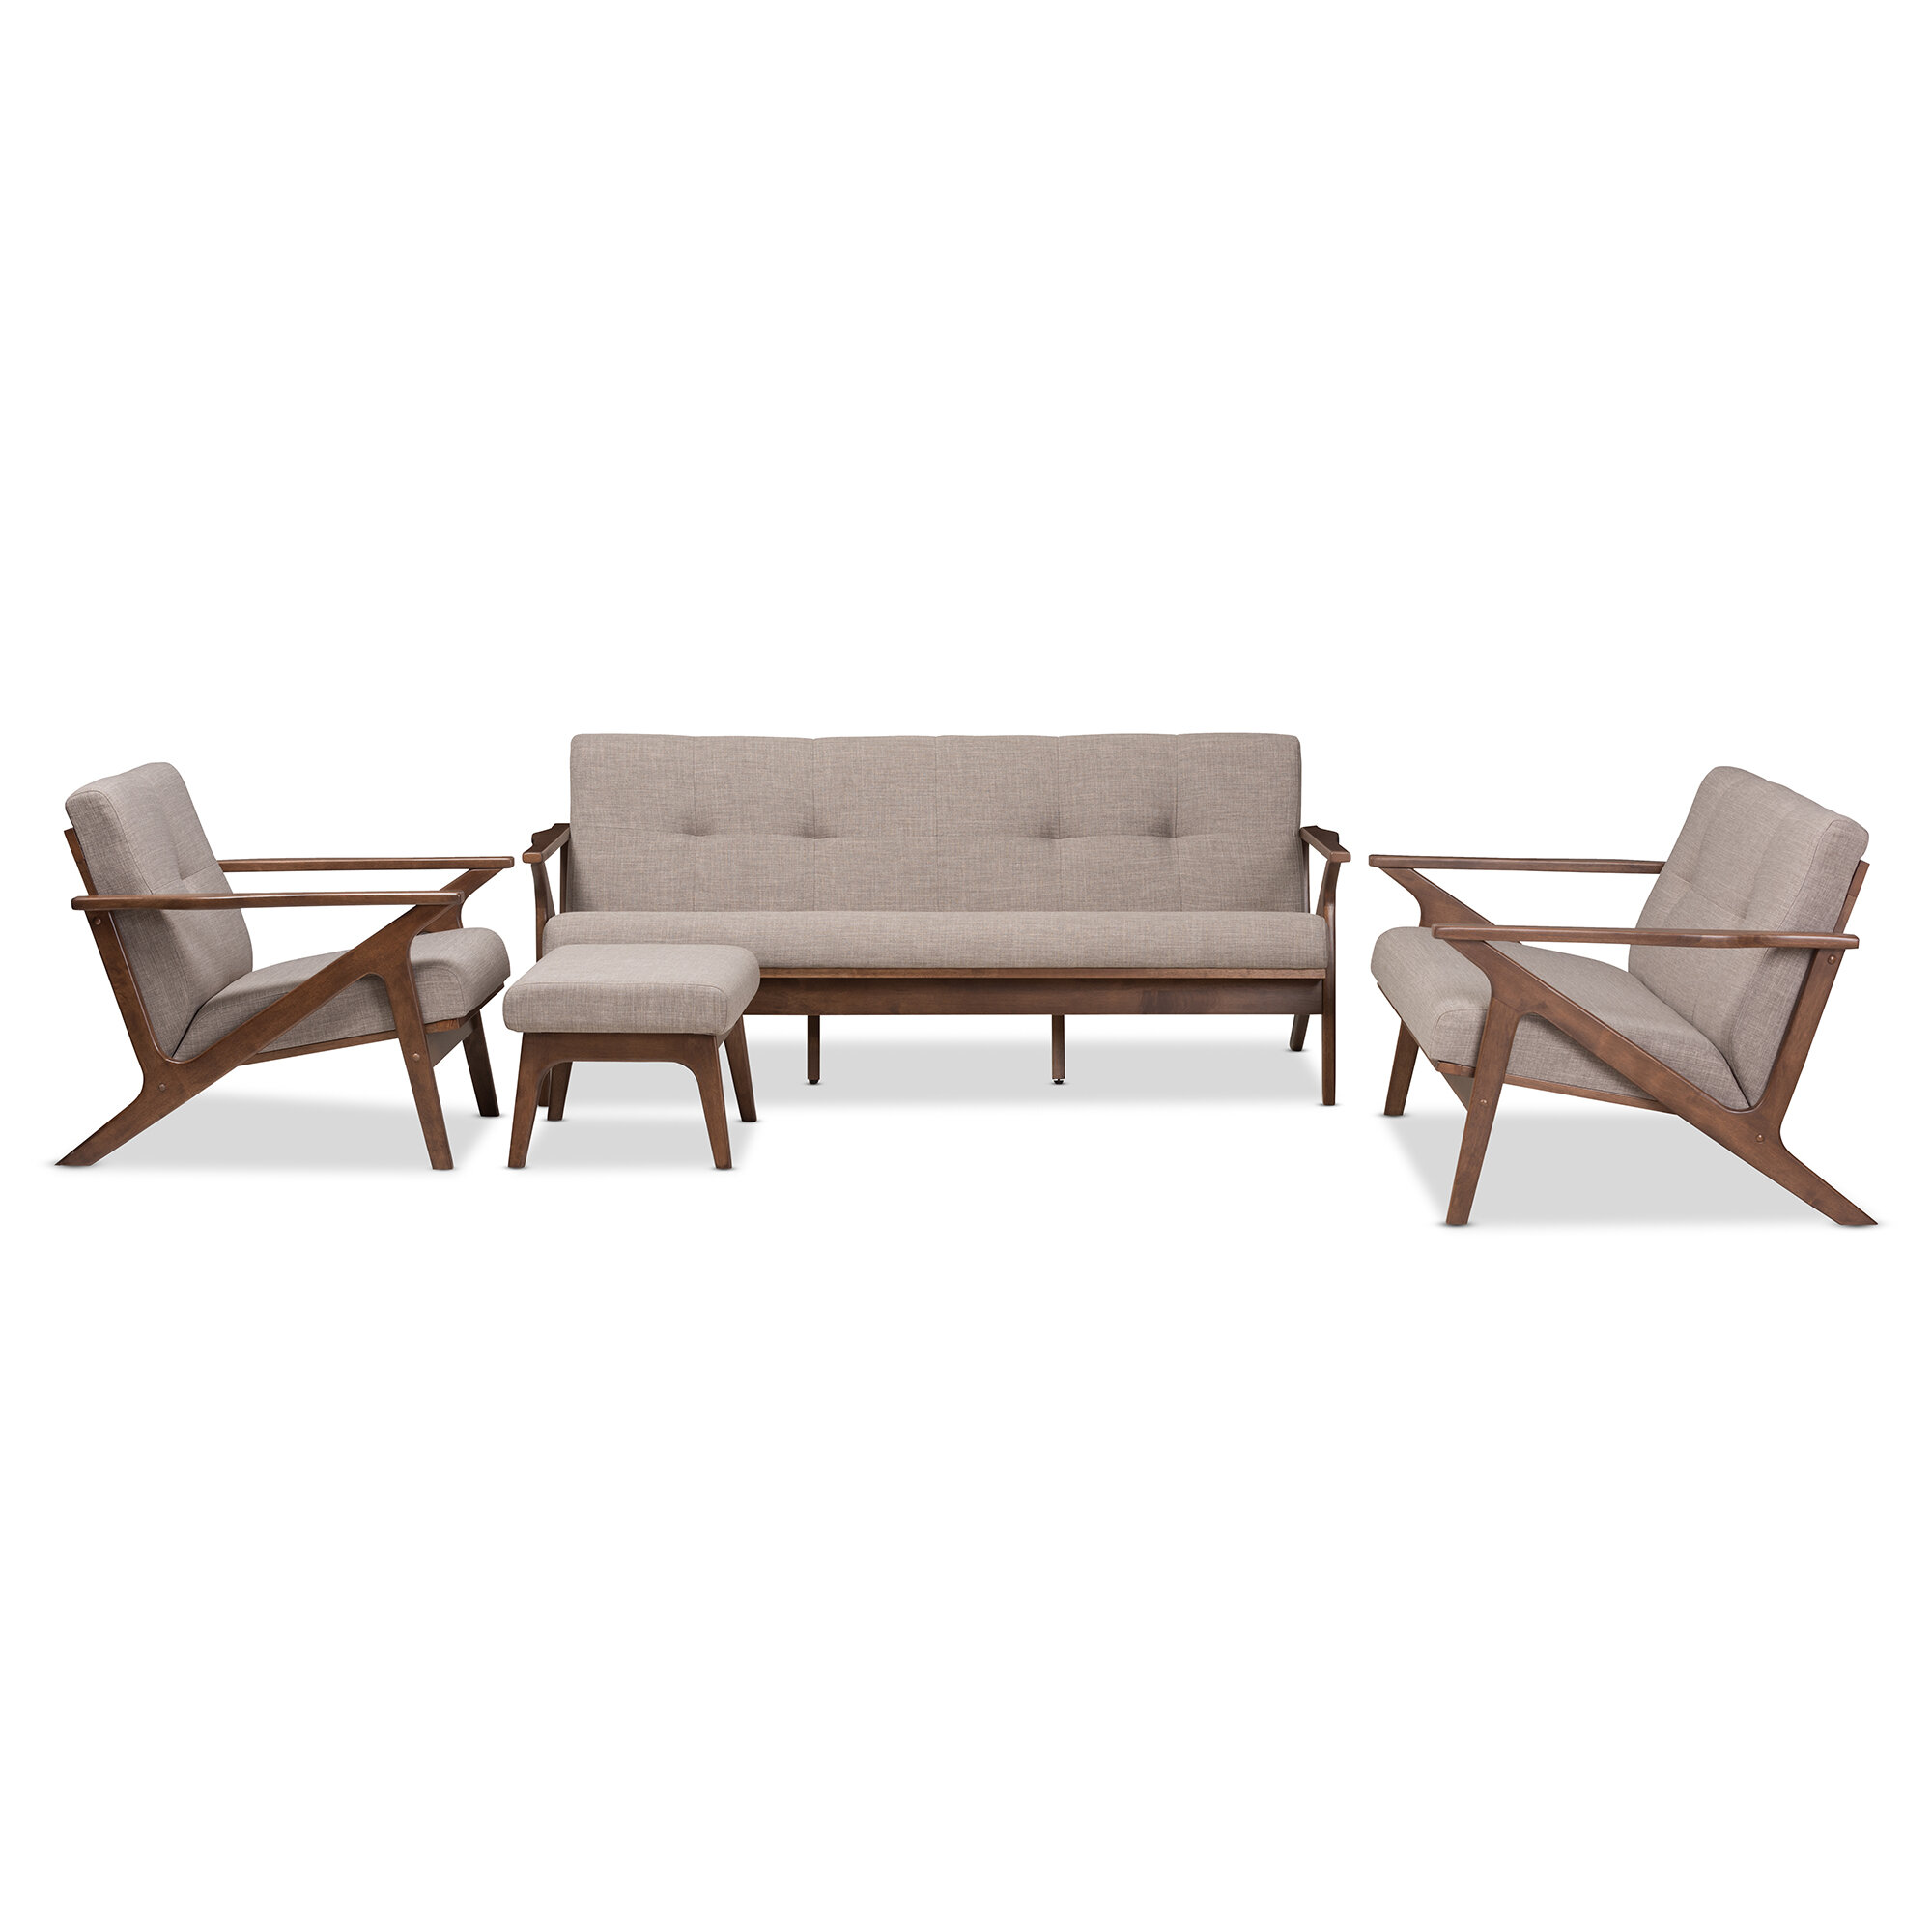 Wojtala Mid-Century Modern 4 Piece Living Room Set